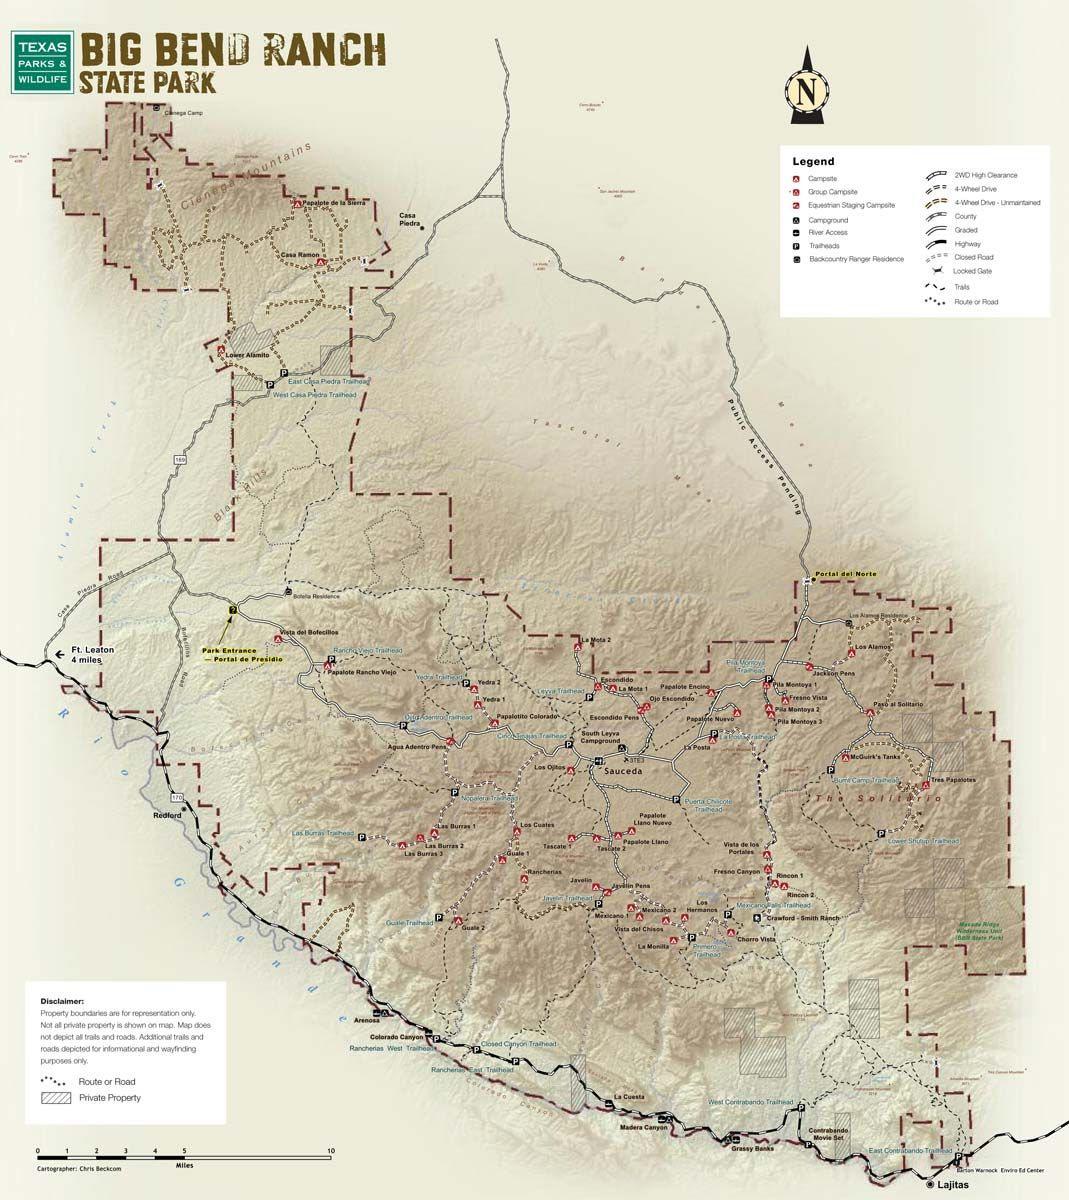 Big Bend Ranch State Park Texas Httpwwwtpwdstatetxus - Big bend national park map us